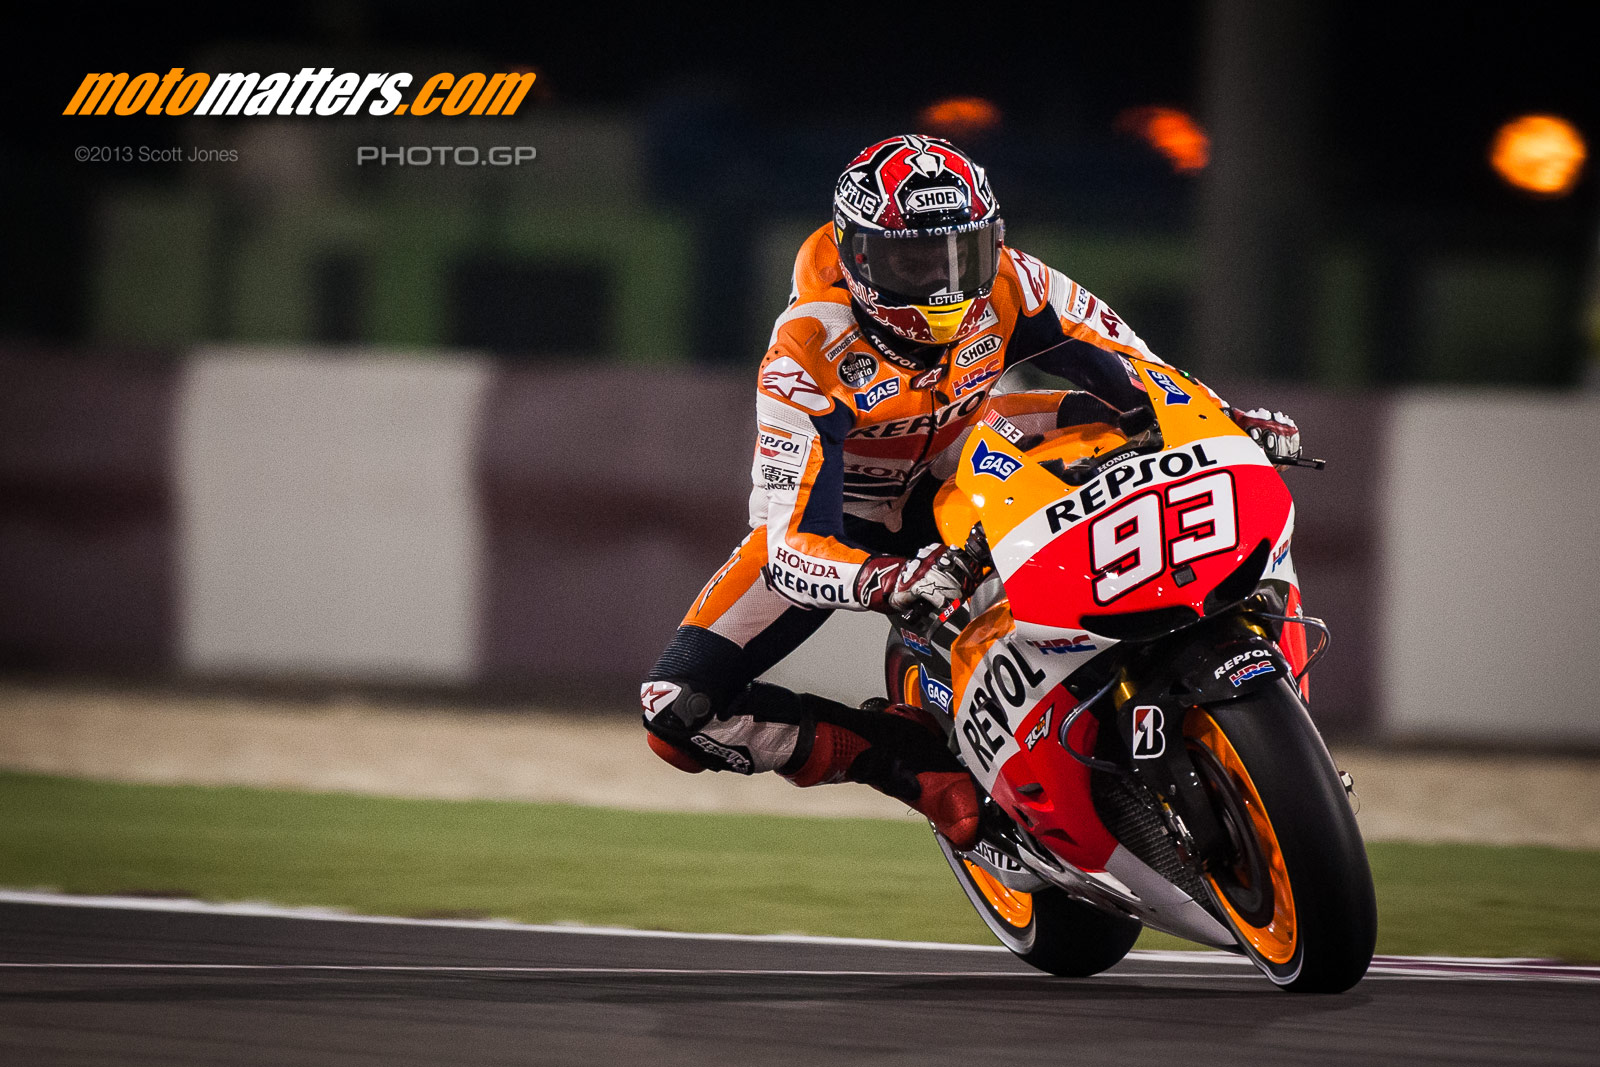 [GP] Qatar - Page 2 2013-MotoGP-01-Qatar-Thursday-0427-O